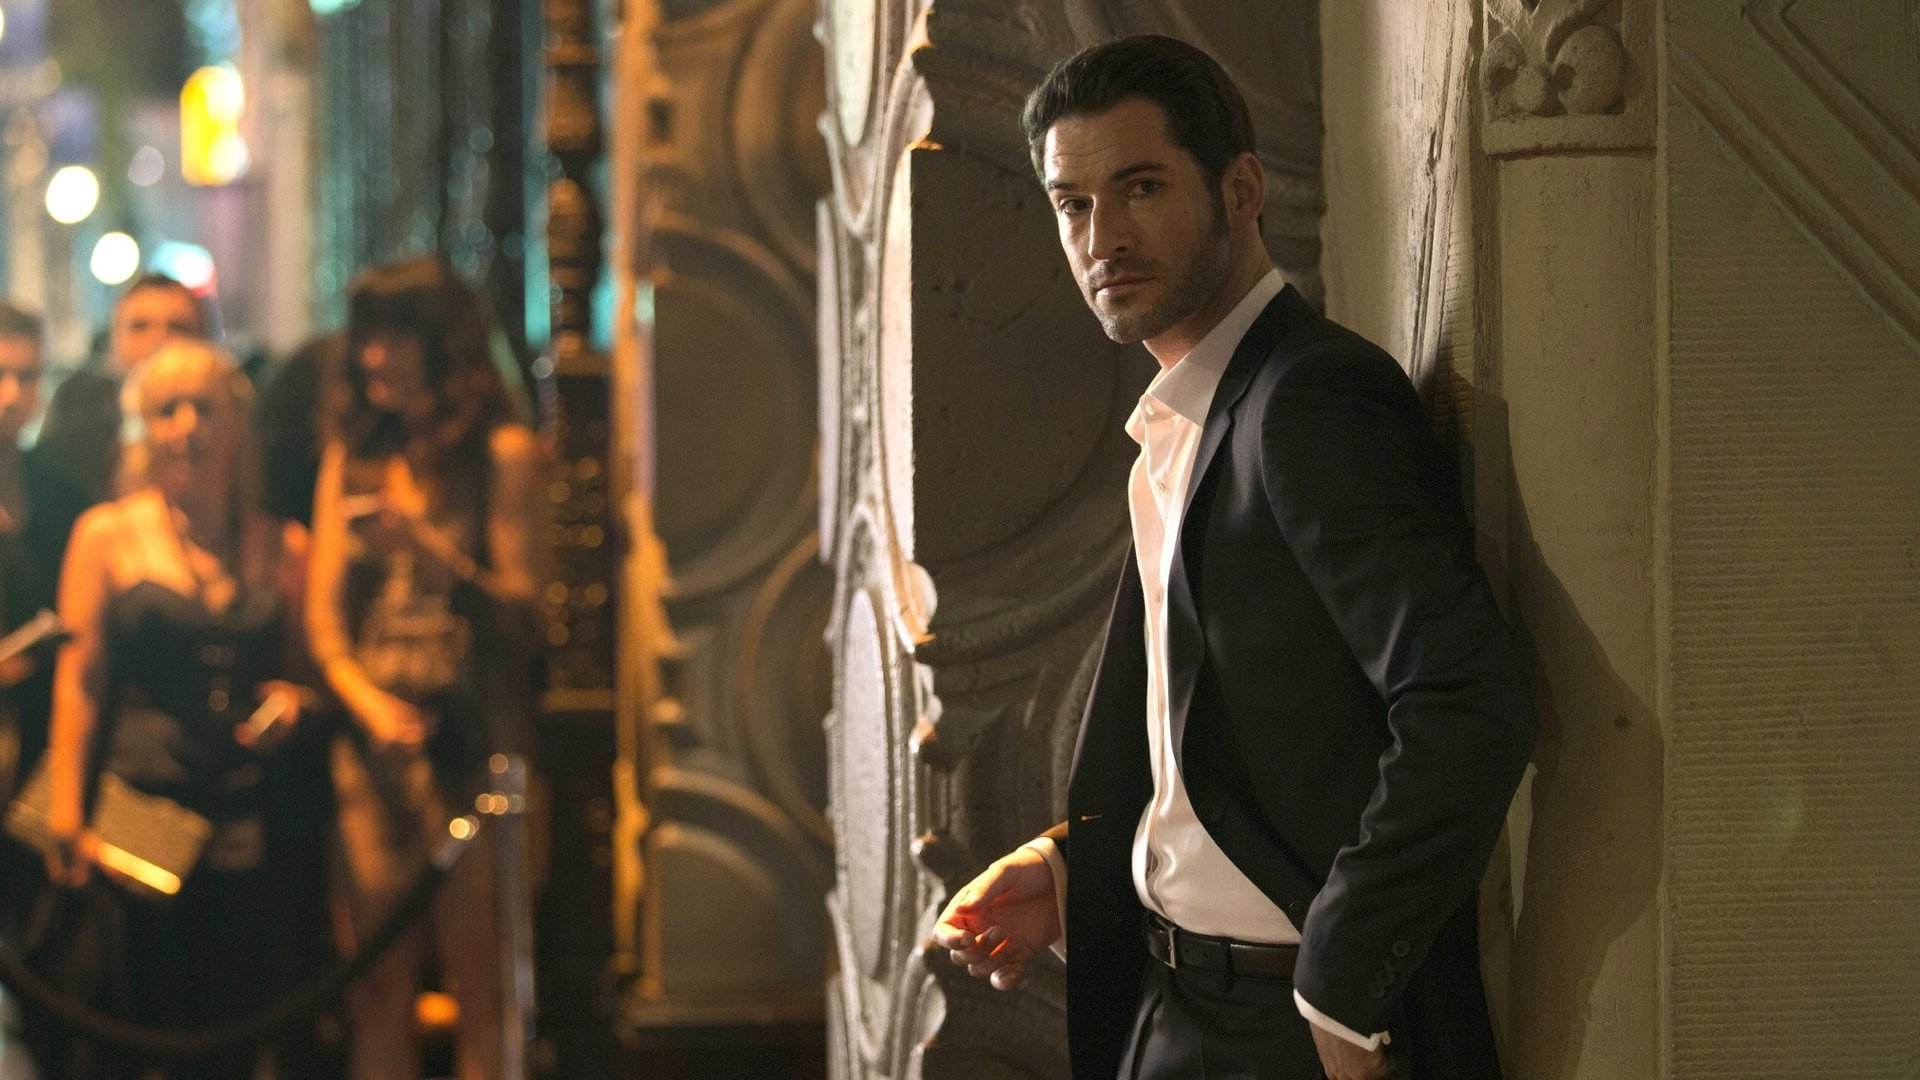 lucifer tv series, hd tv shows, 4k wallpapers, images, backgrounds